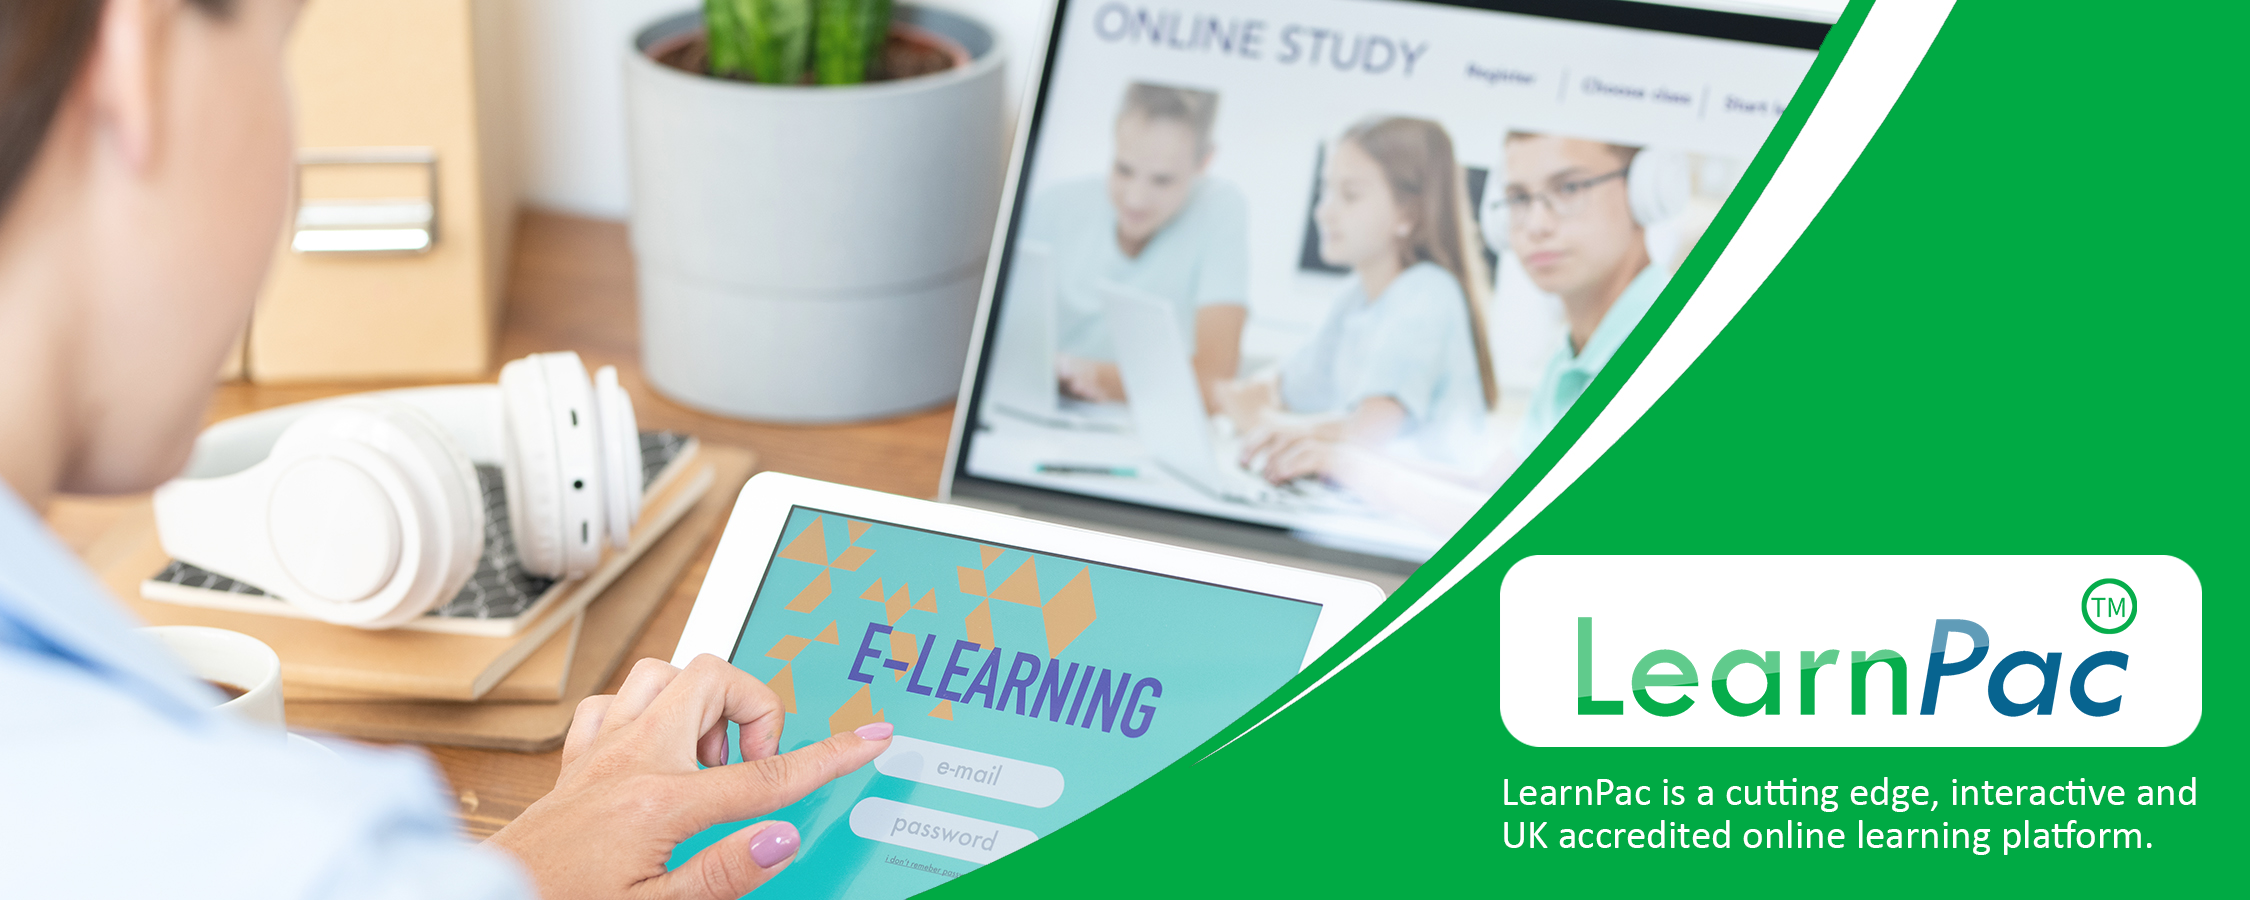 Dual Diagnosis - Online Learning Courses - E-Learning Courses - LearnPac Systems UK -